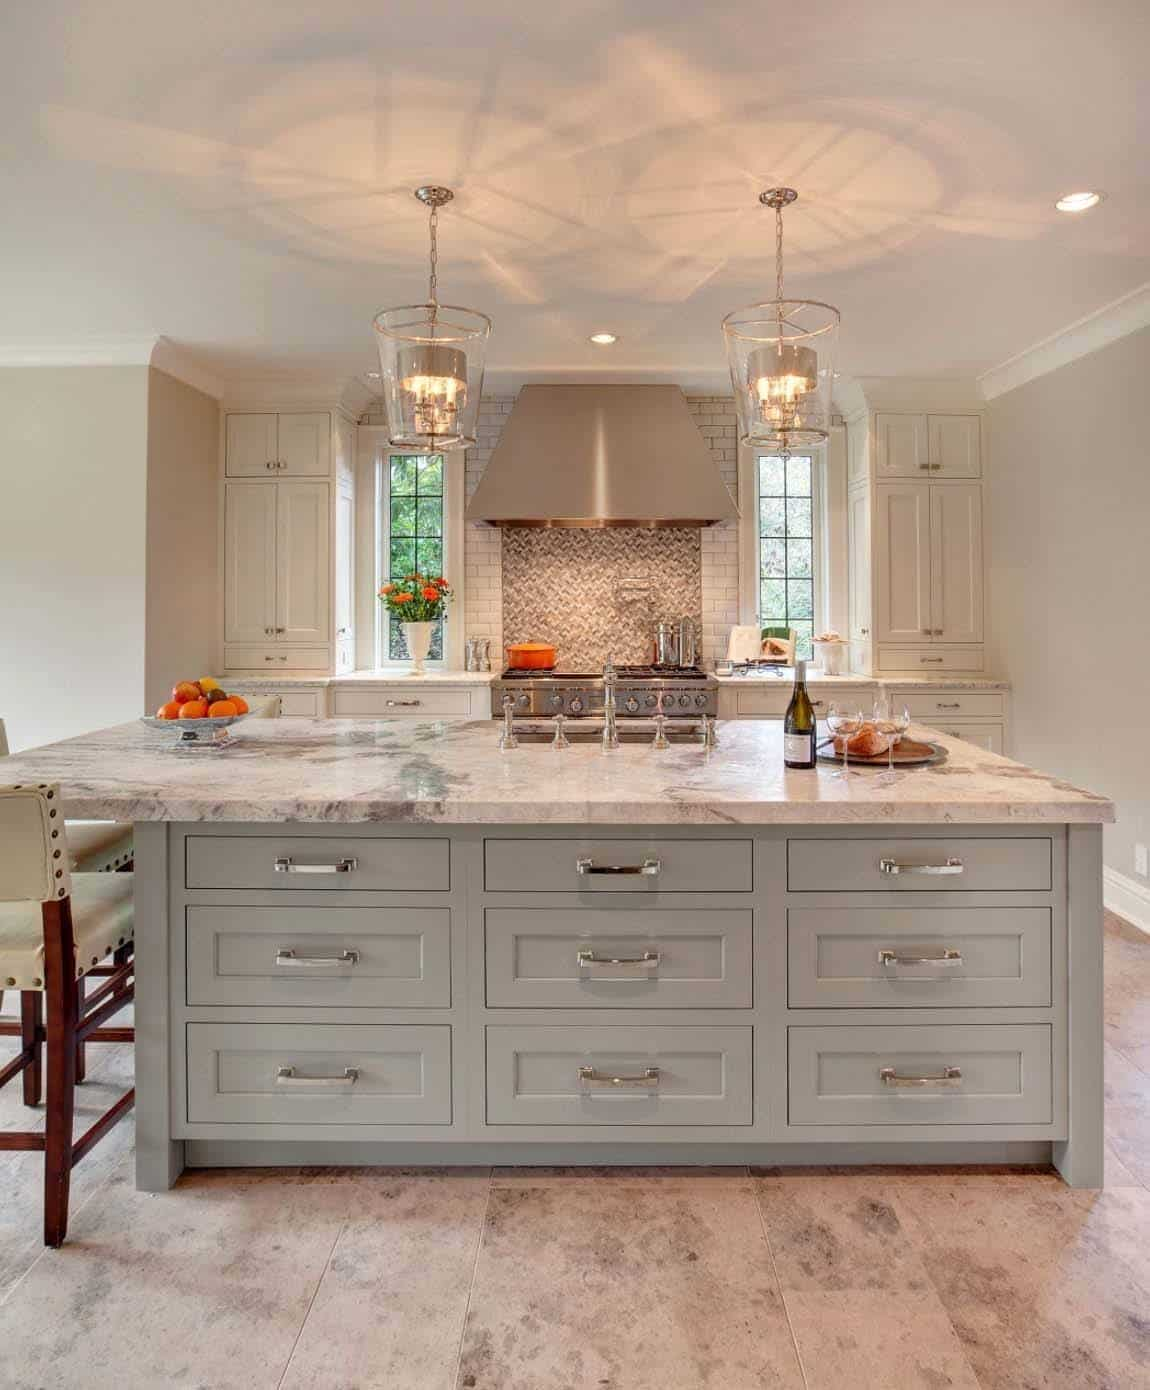 Kitchen Island Ideas-13-1 Kindesign